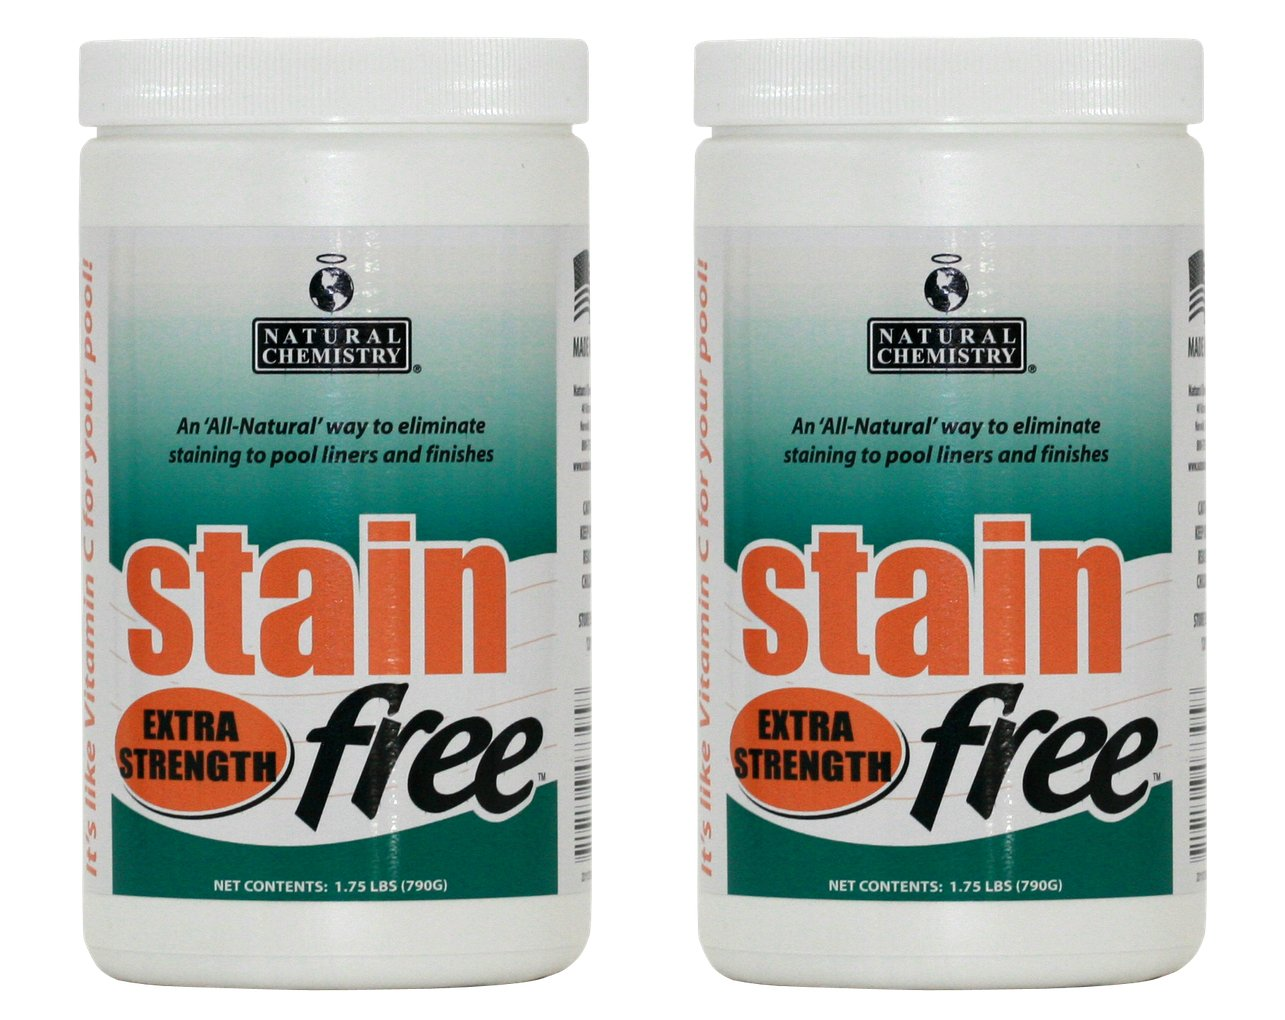 2) Natural Chemistry 07395 STAINfree Extra Strength Metal Stain Remover Buckets